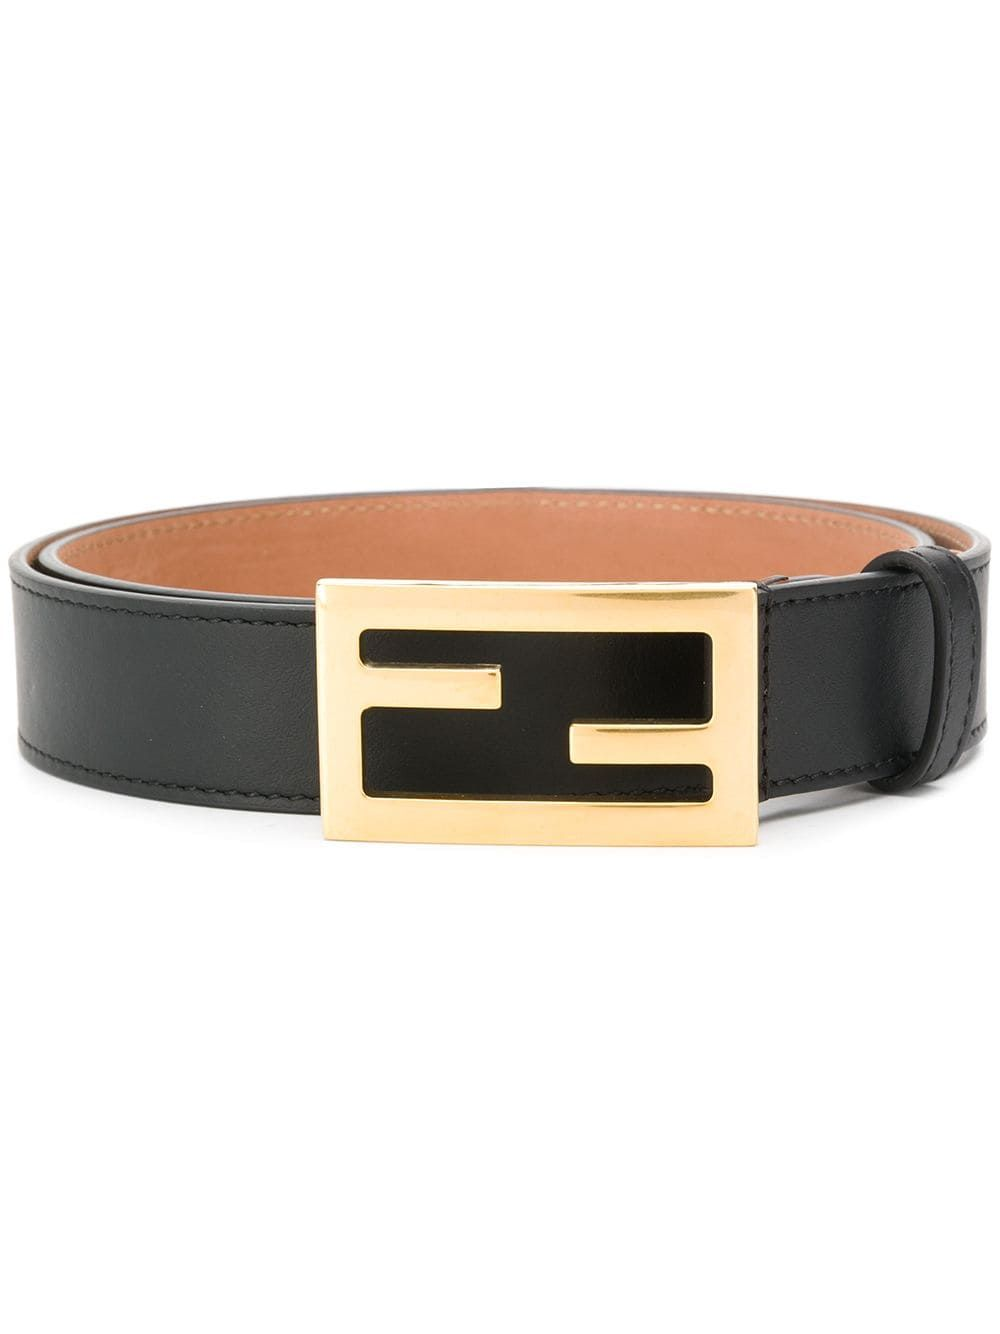 Designer Genuine Leather Runway Wide Belt with Signature Gold  Tone Buckle